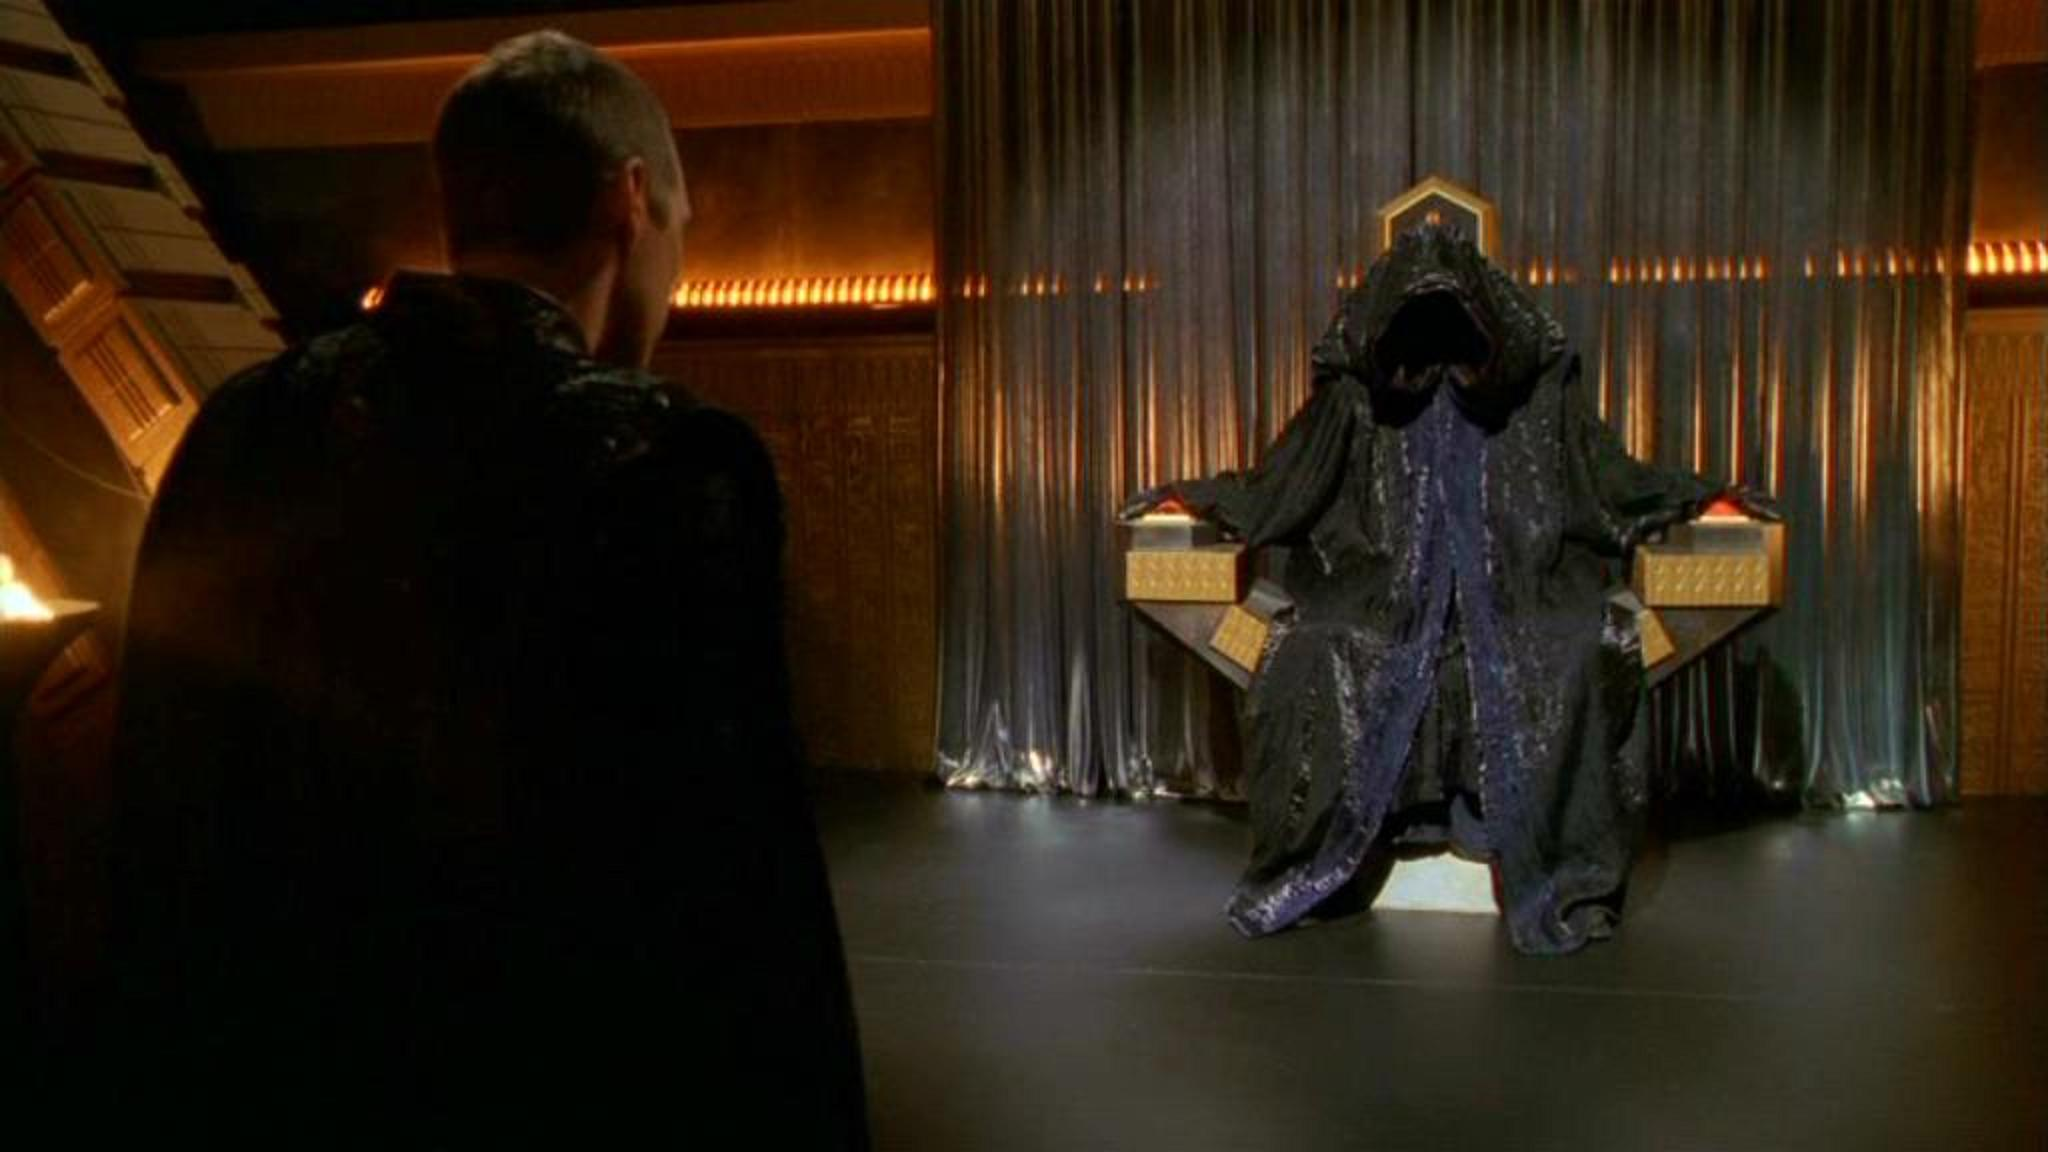 Stargate SG1 - End of Anubis - YouTube